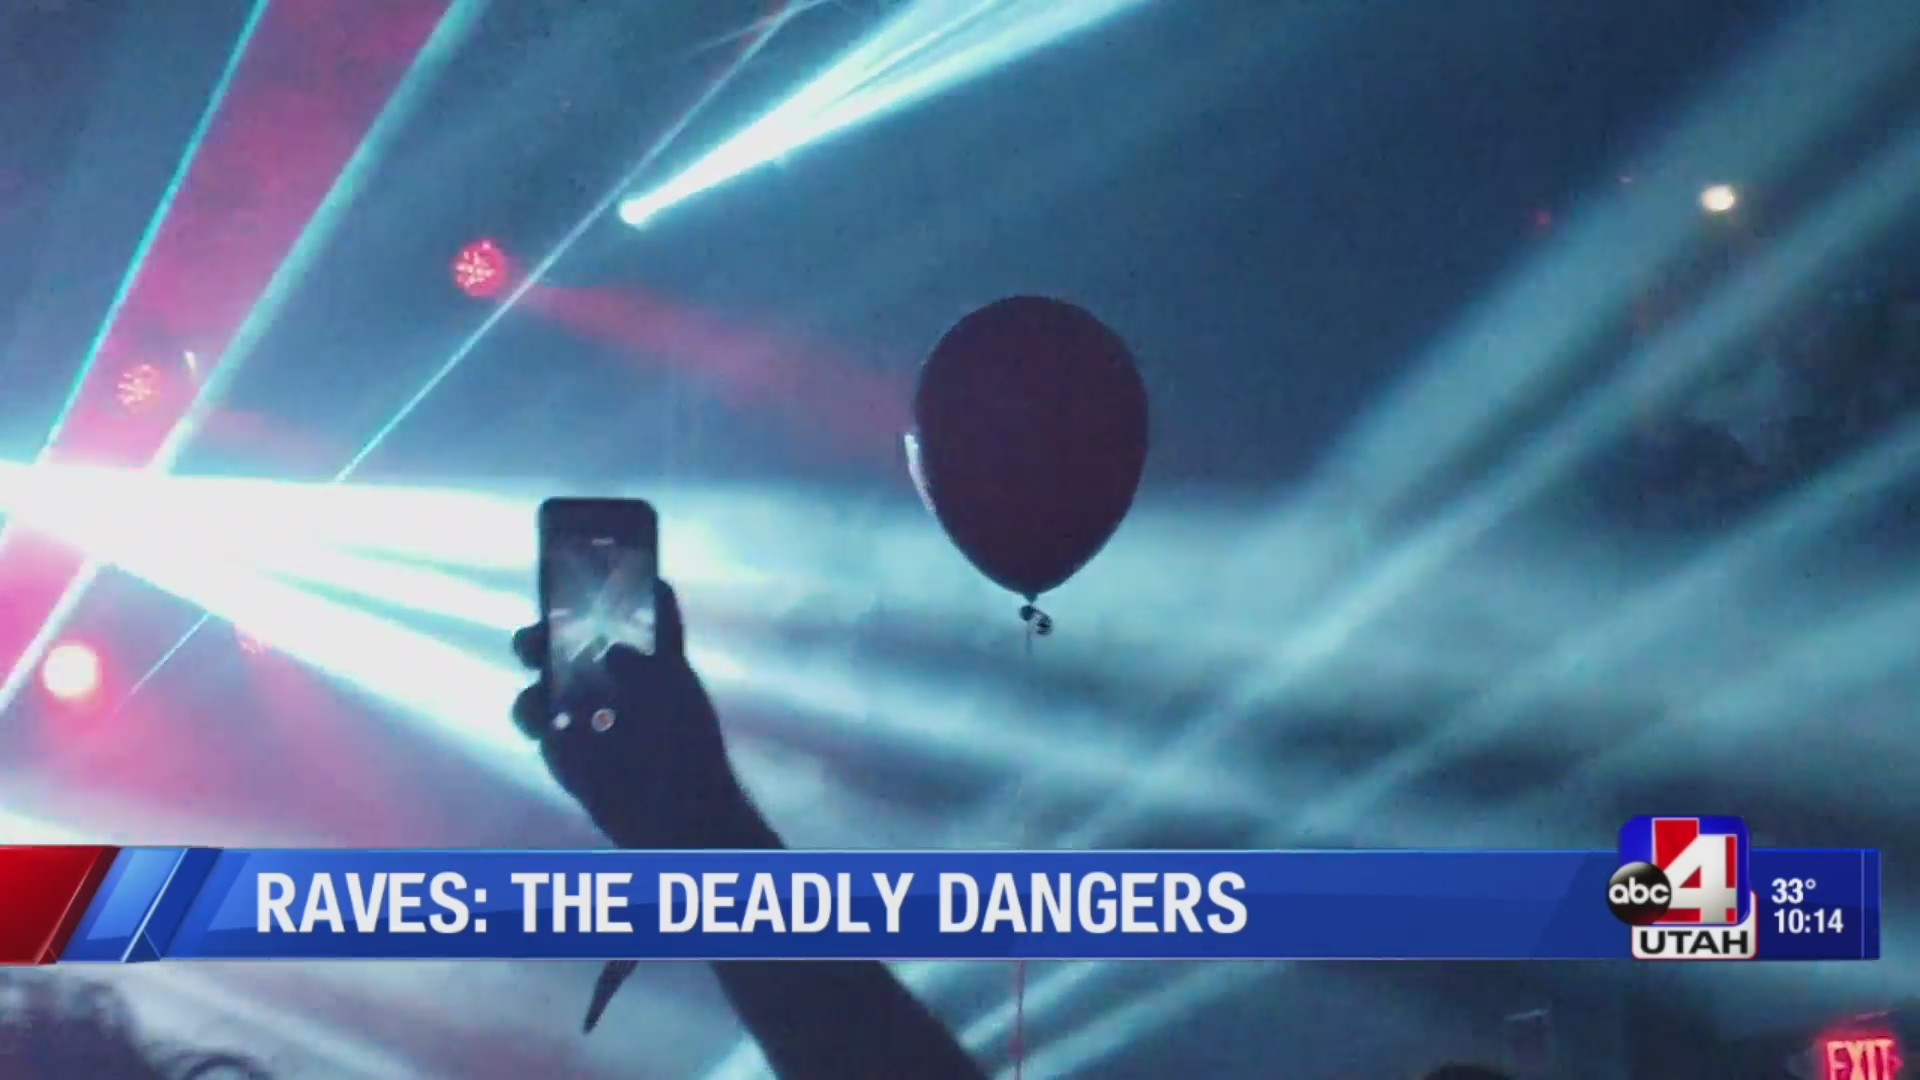 Raves: The Deadly Dangers